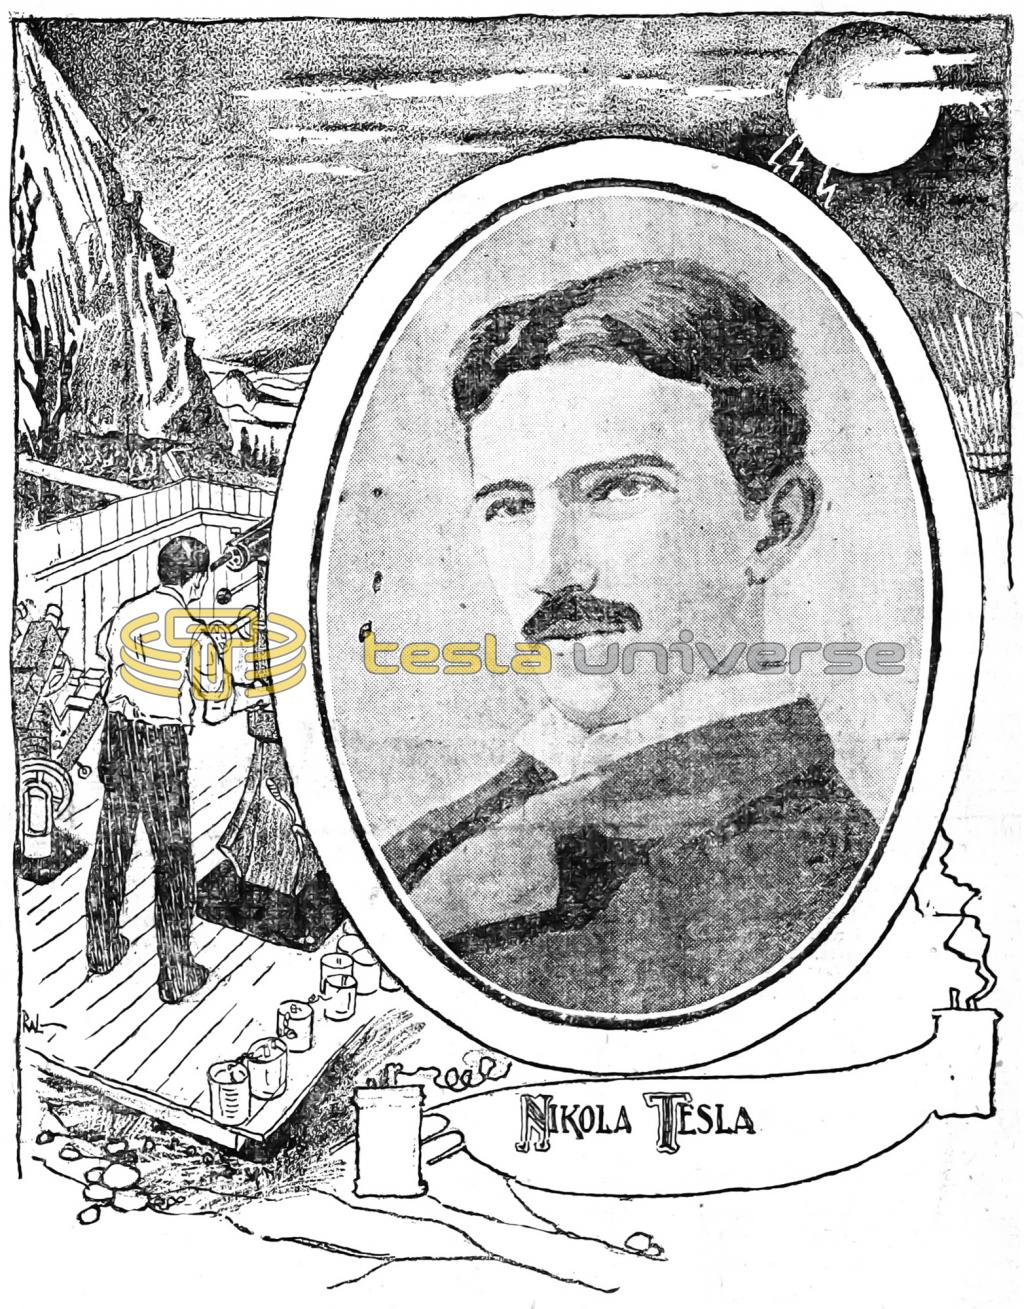 Illustration of Nikola Tesla from around the time of his Colorado Springs experiments